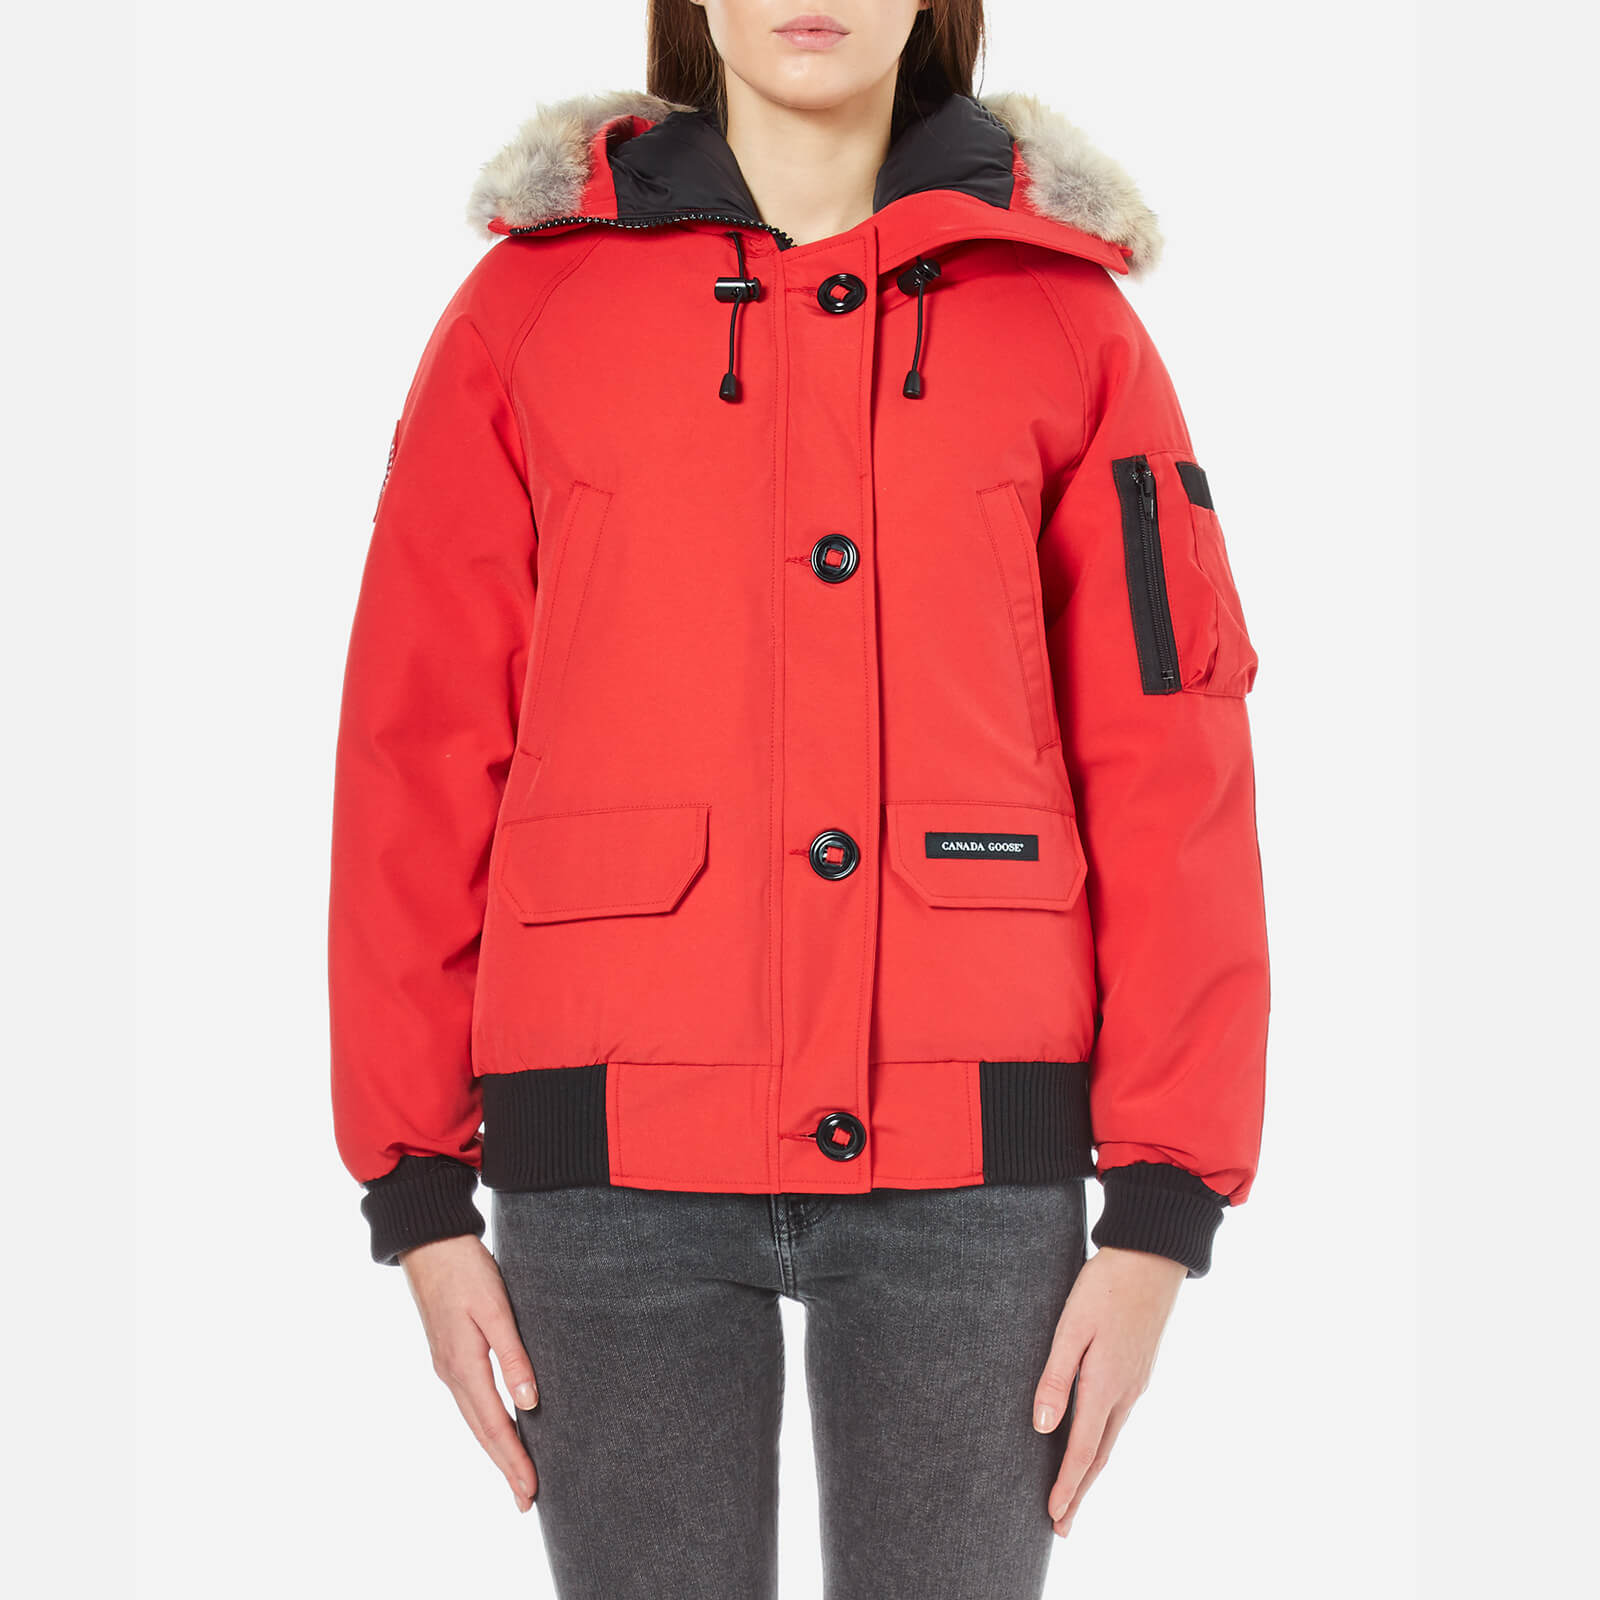 c2ee6bba32a3 Canada Goose Women s Chilliwack Bomber Jacket - Red - Free UK Delivery over  £50